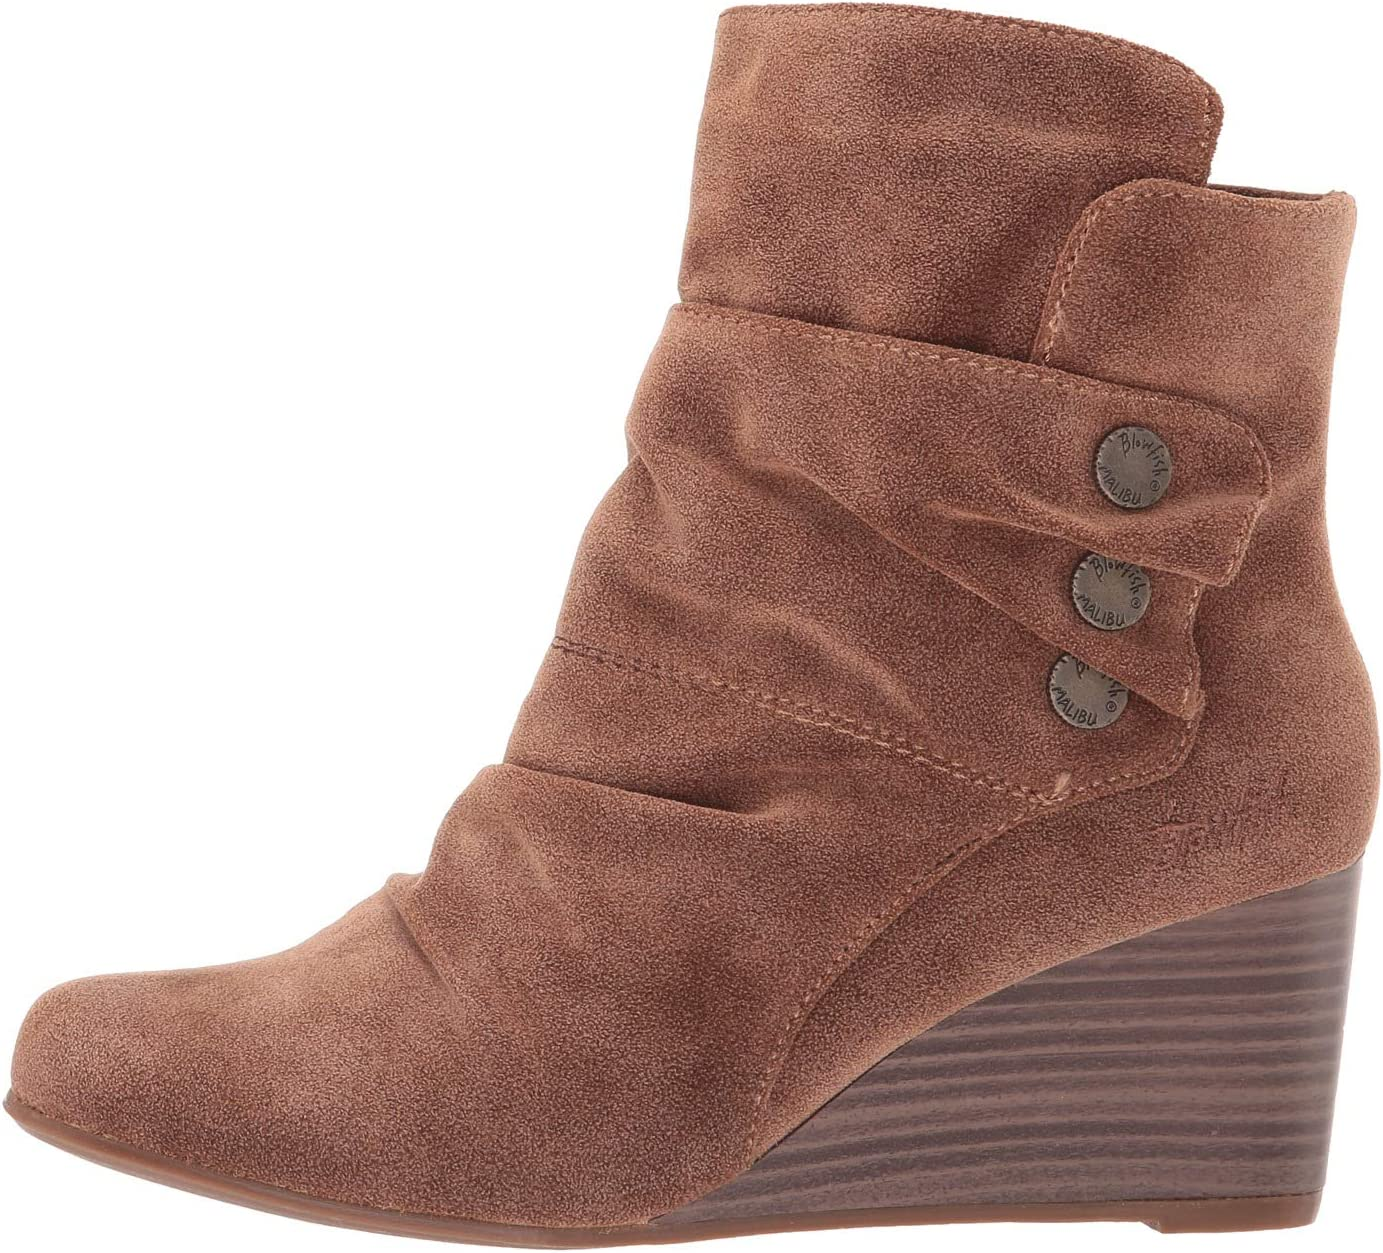 Blowfish Bagby | Women's shoes | 2020 Newest